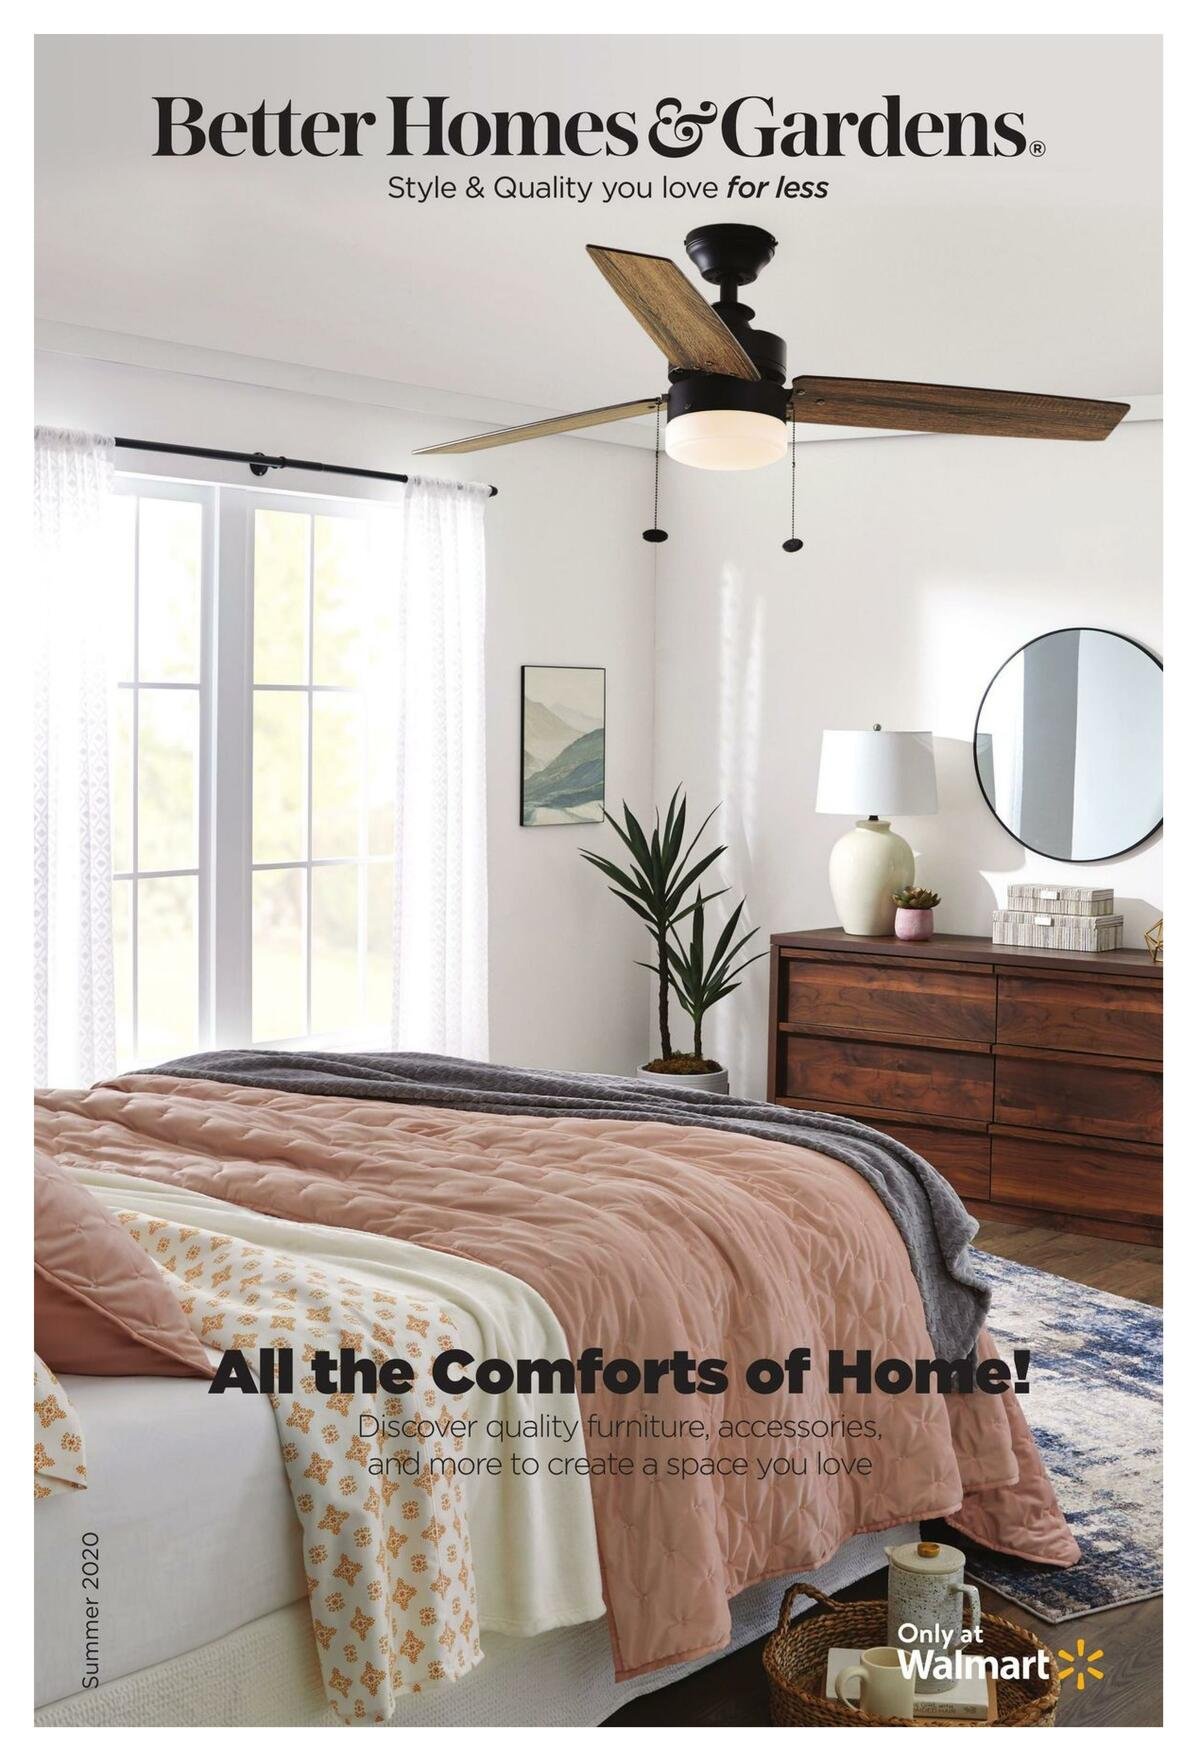 Walmart Better Homes & Gardens Weekly Ad from July 13